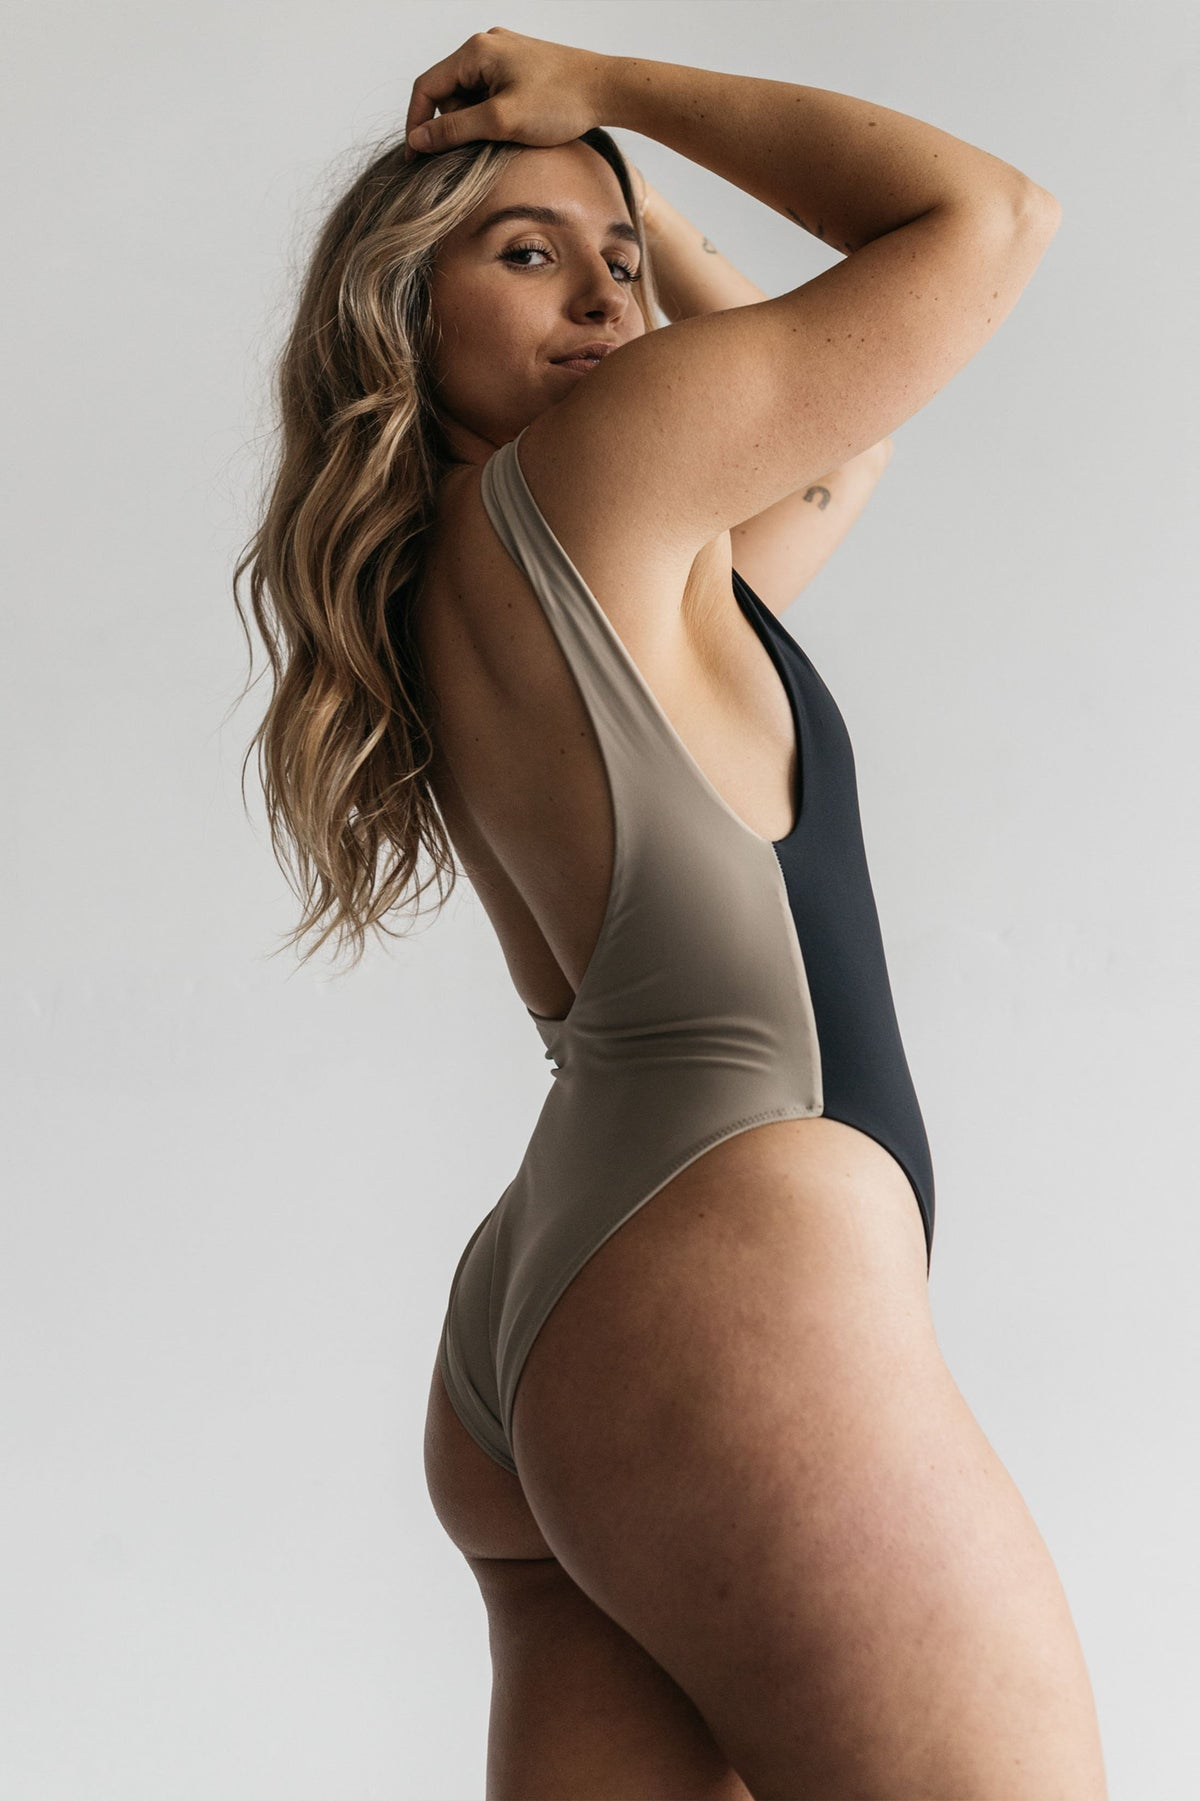 The back of a woman standing with her hands in her hair wearing a black and nude color blocked one piece swimsuit.